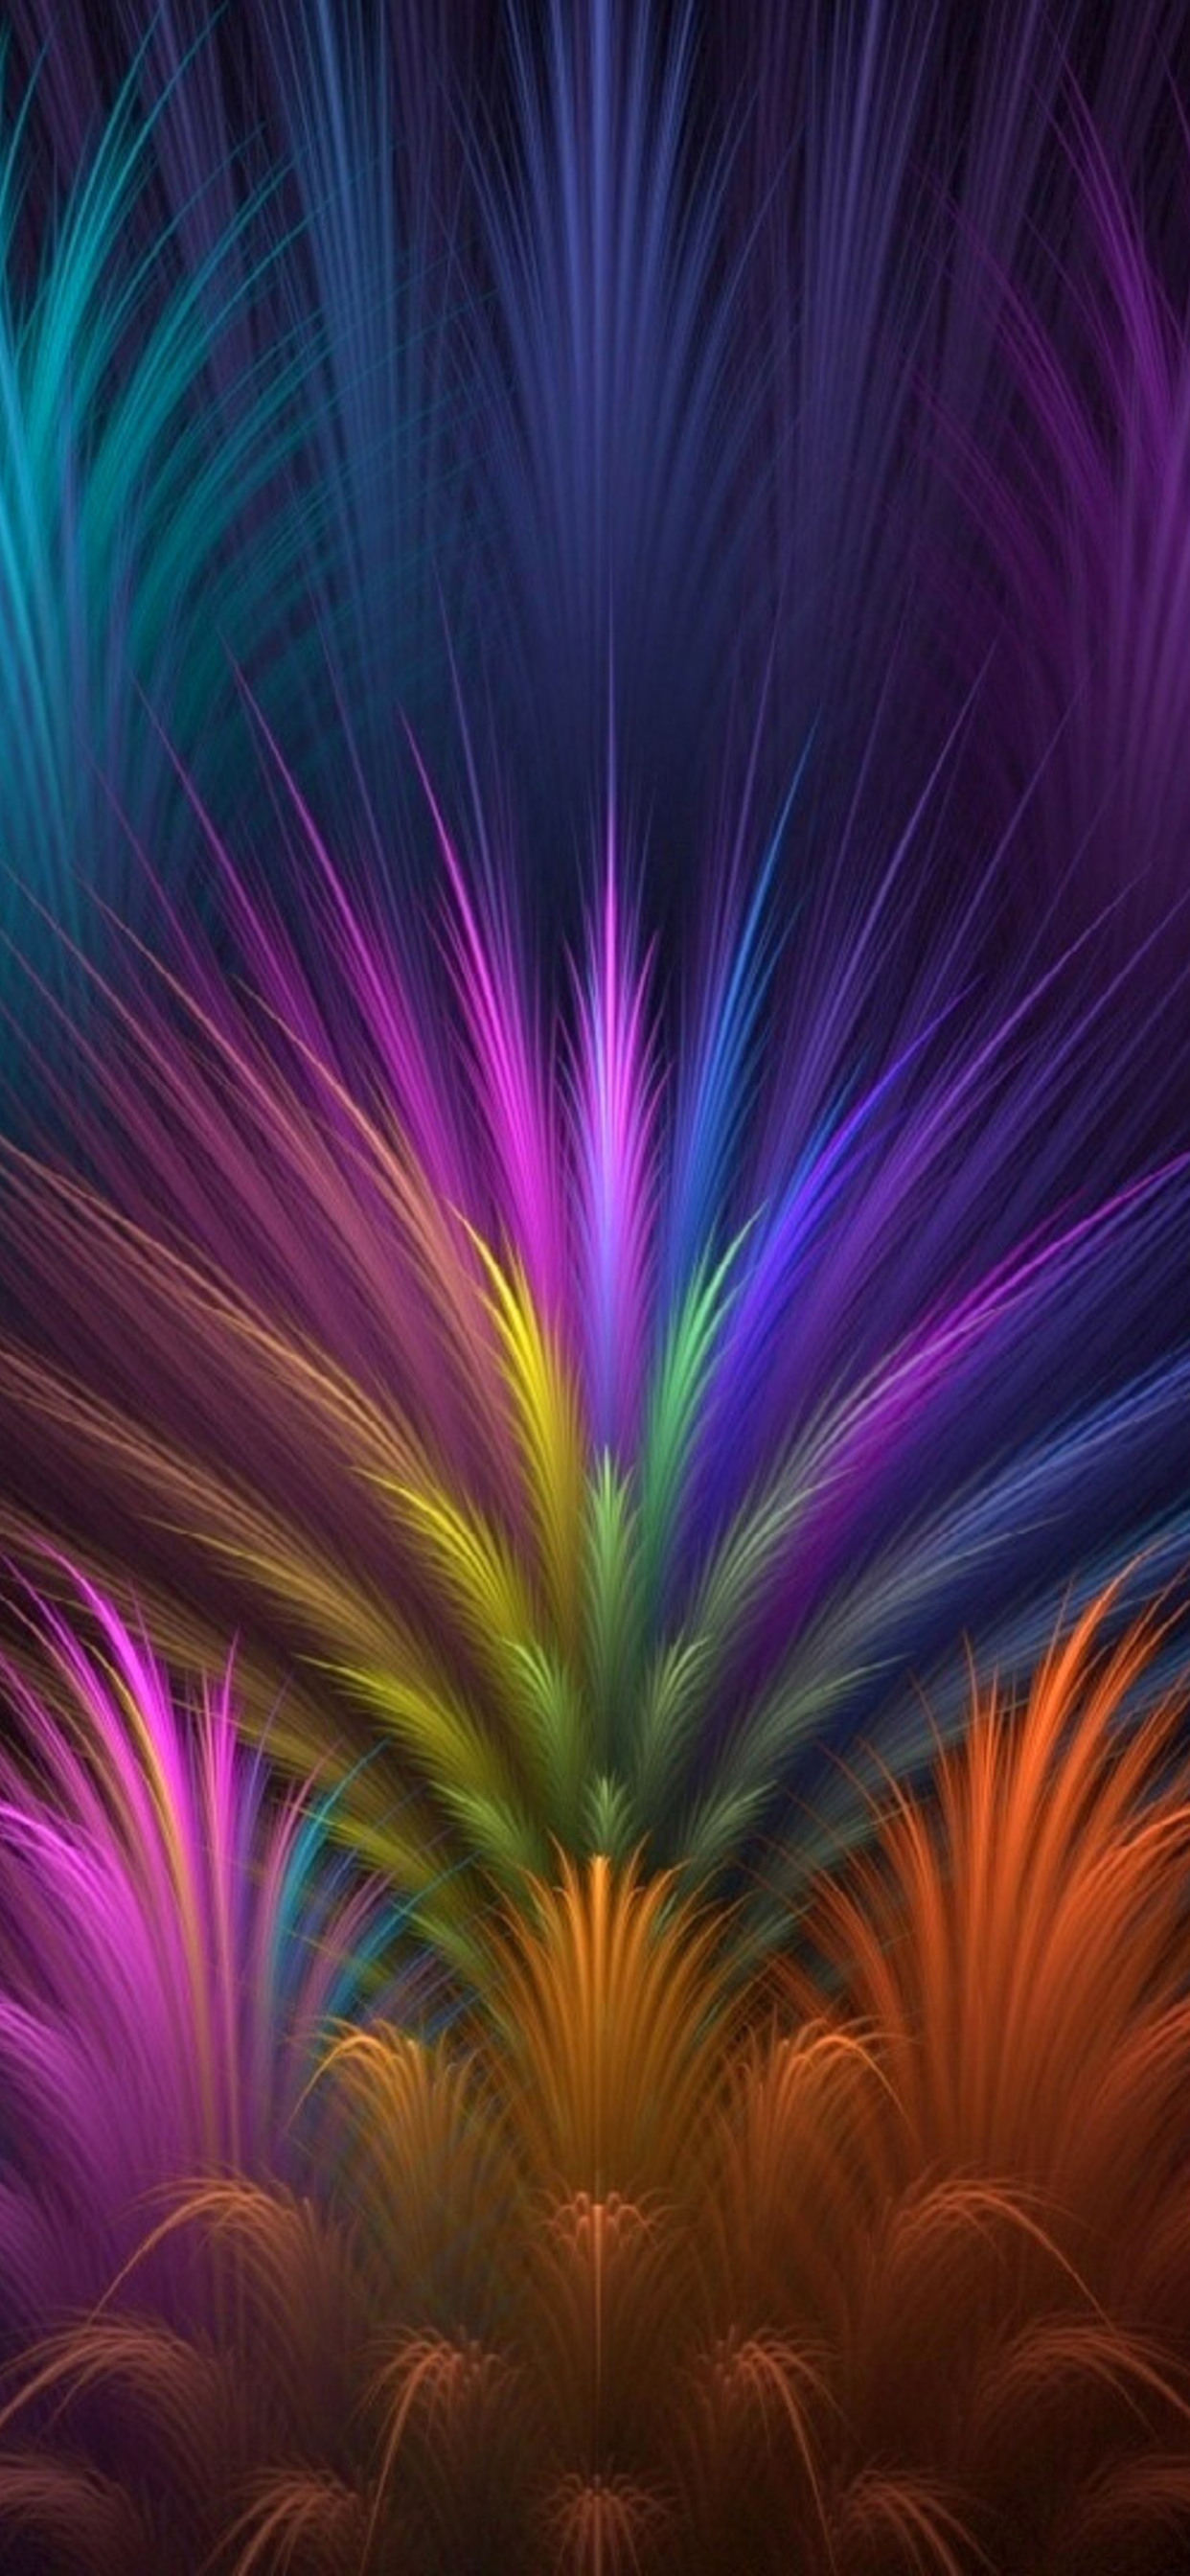 1242x2688 Feathers Colorful Petals Iphone Xs Max Hd 4k Wallpapers